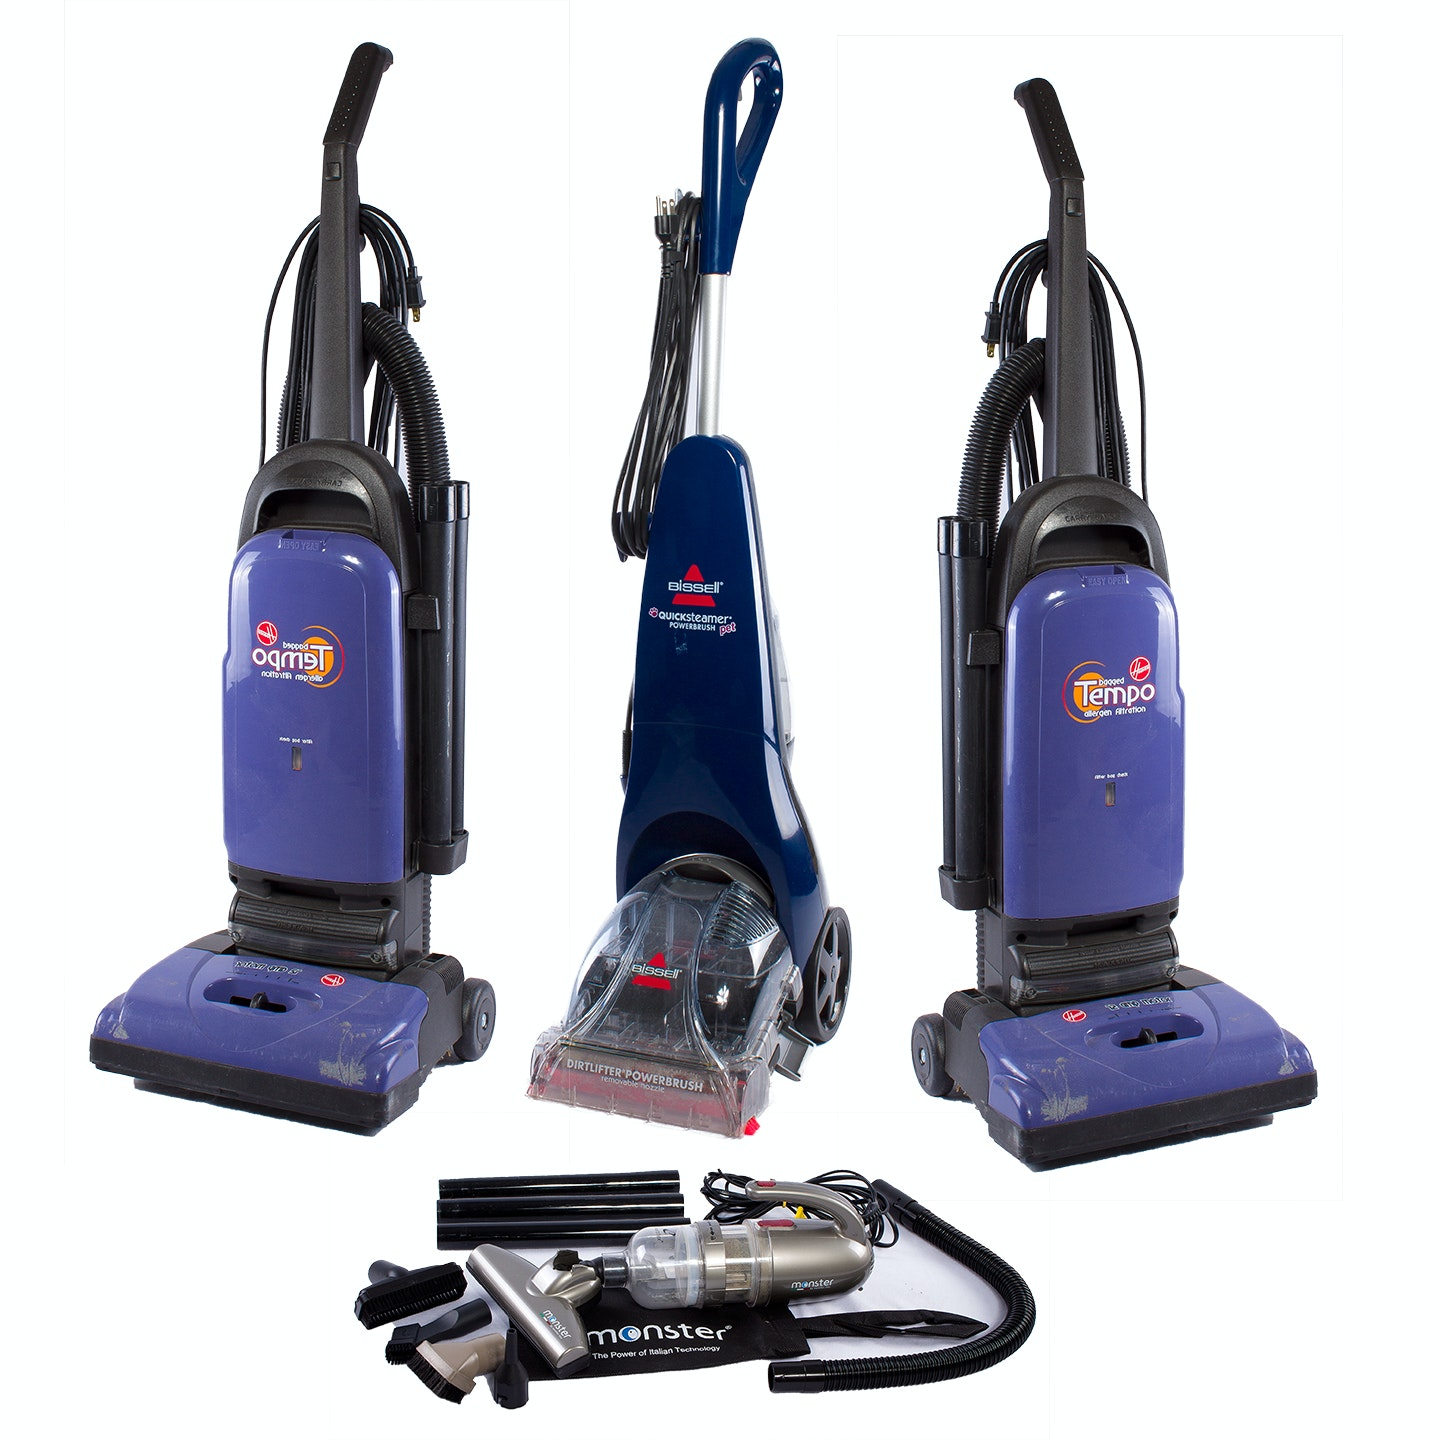 """Bissell """"Quicksteamer and Hoover """"Tempo"""" Vacuum Cleaners"""